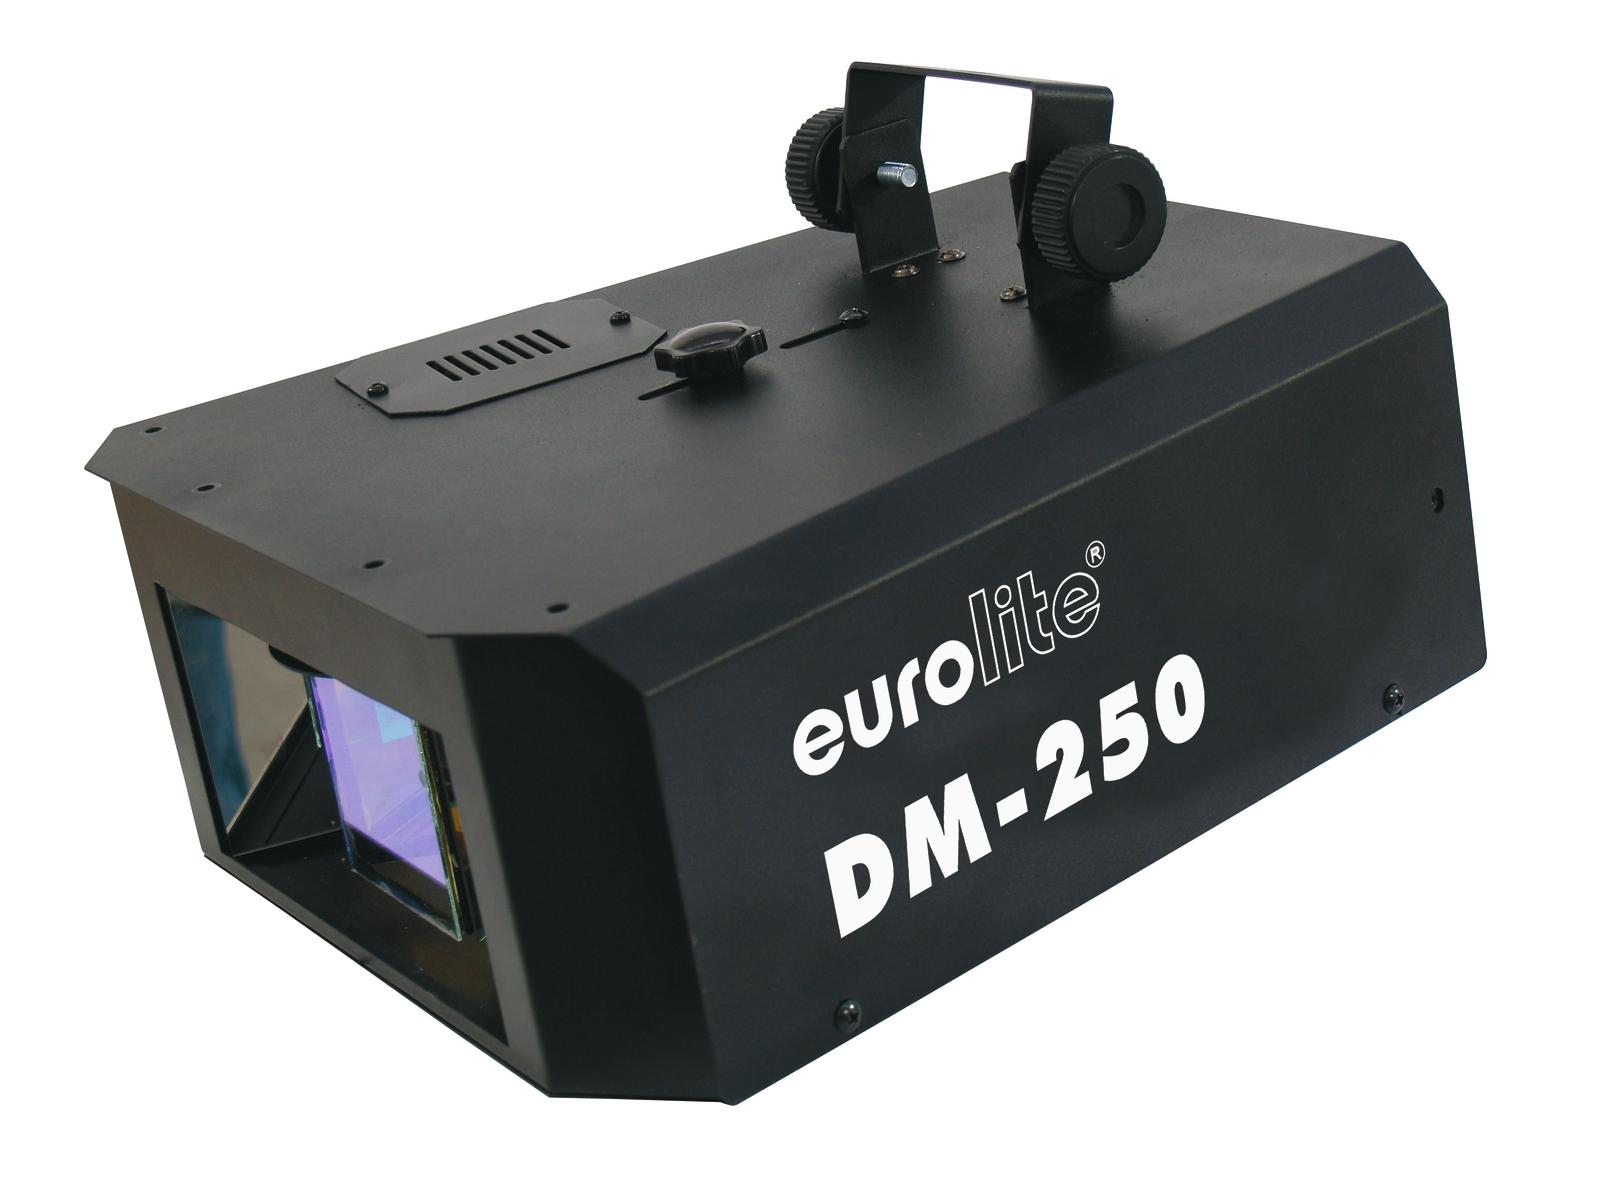 EUROLITE DM-250 Gobo flower effect